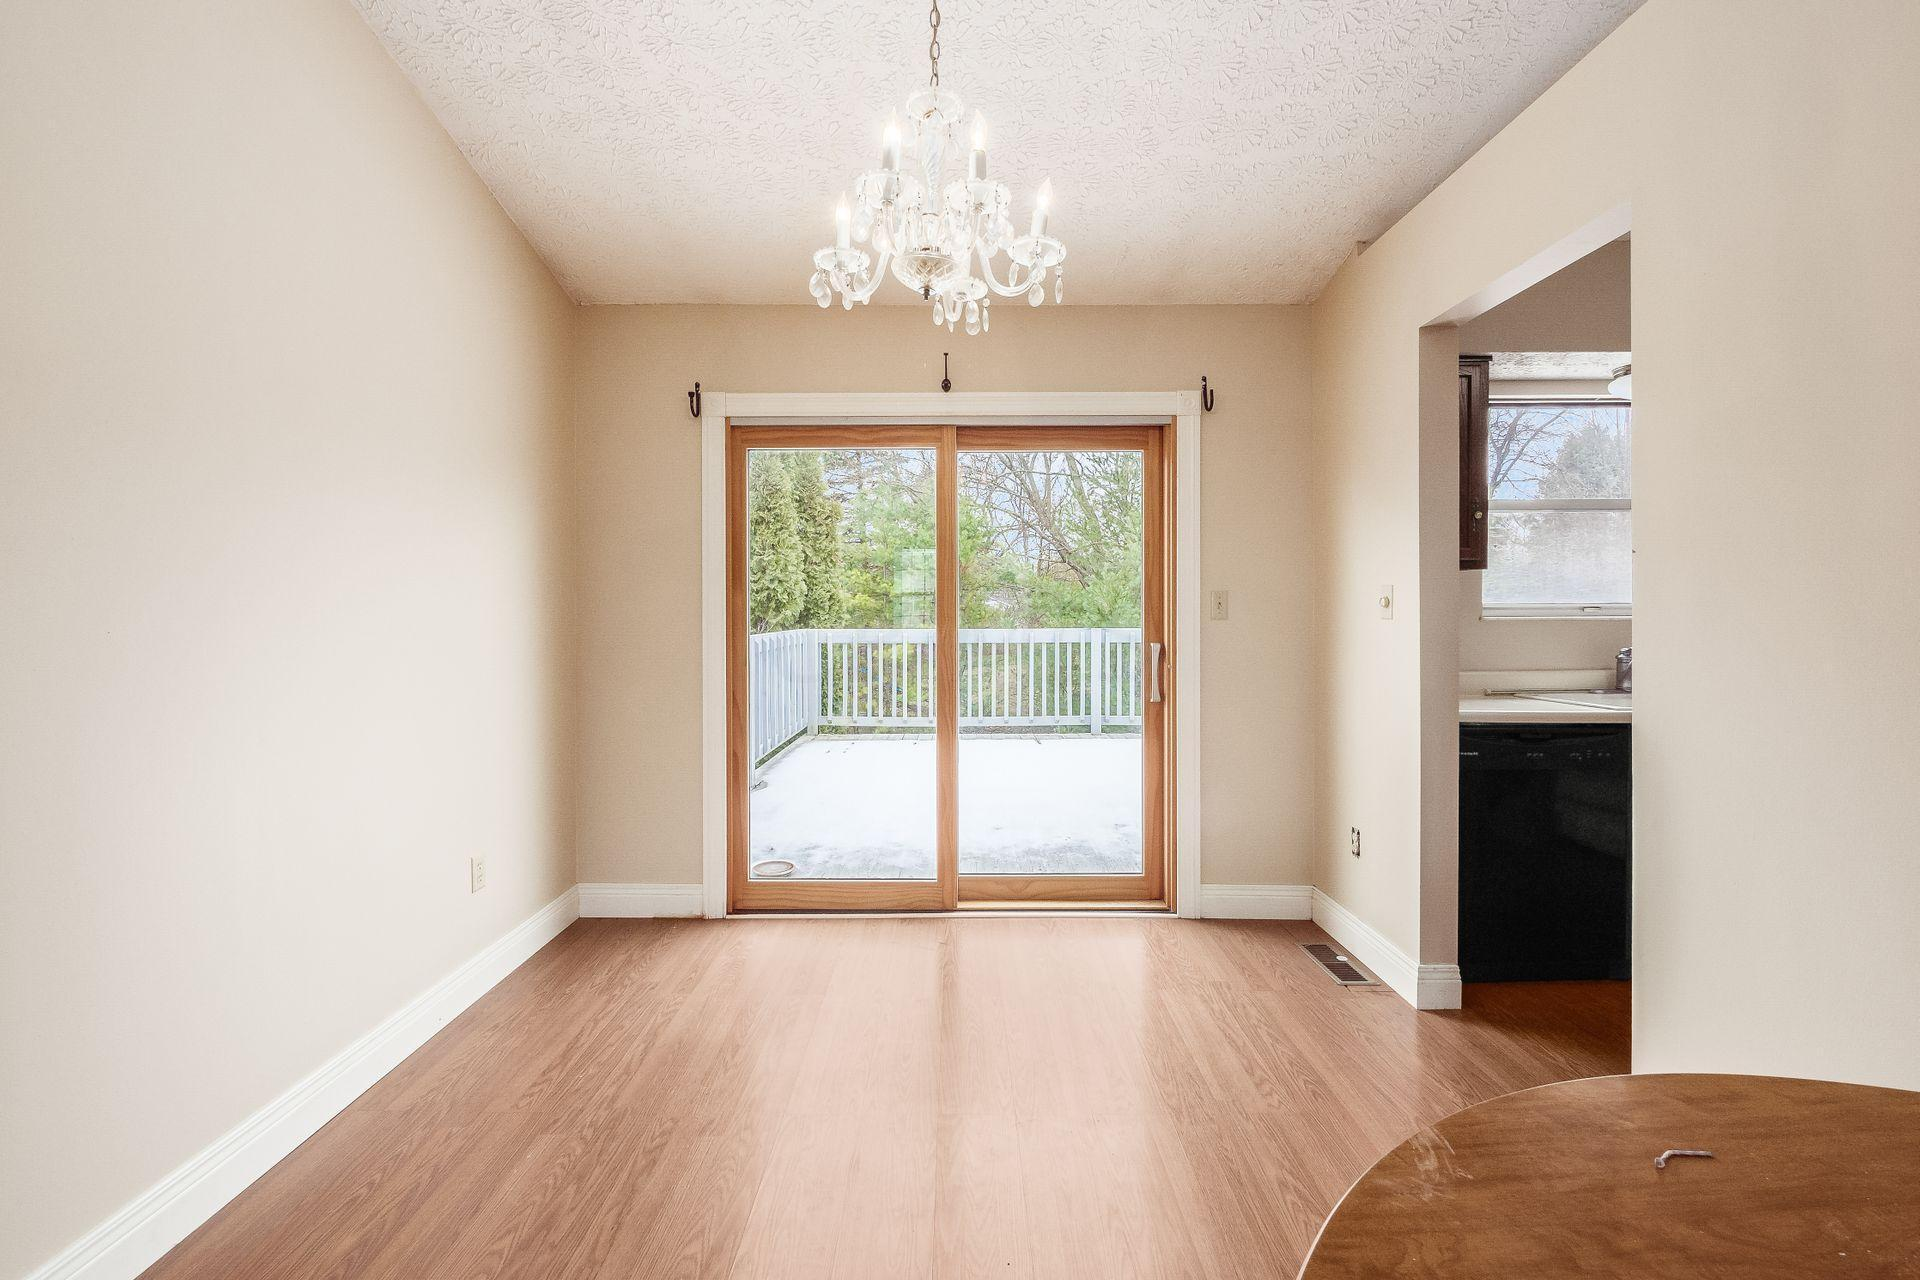 1169 Snohomish Avenue, Columbus, Ohio 43085, 3 Bedrooms Bedrooms, ,2 BathroomsBathrooms,Residential,For Sale,Snohomish,220044120